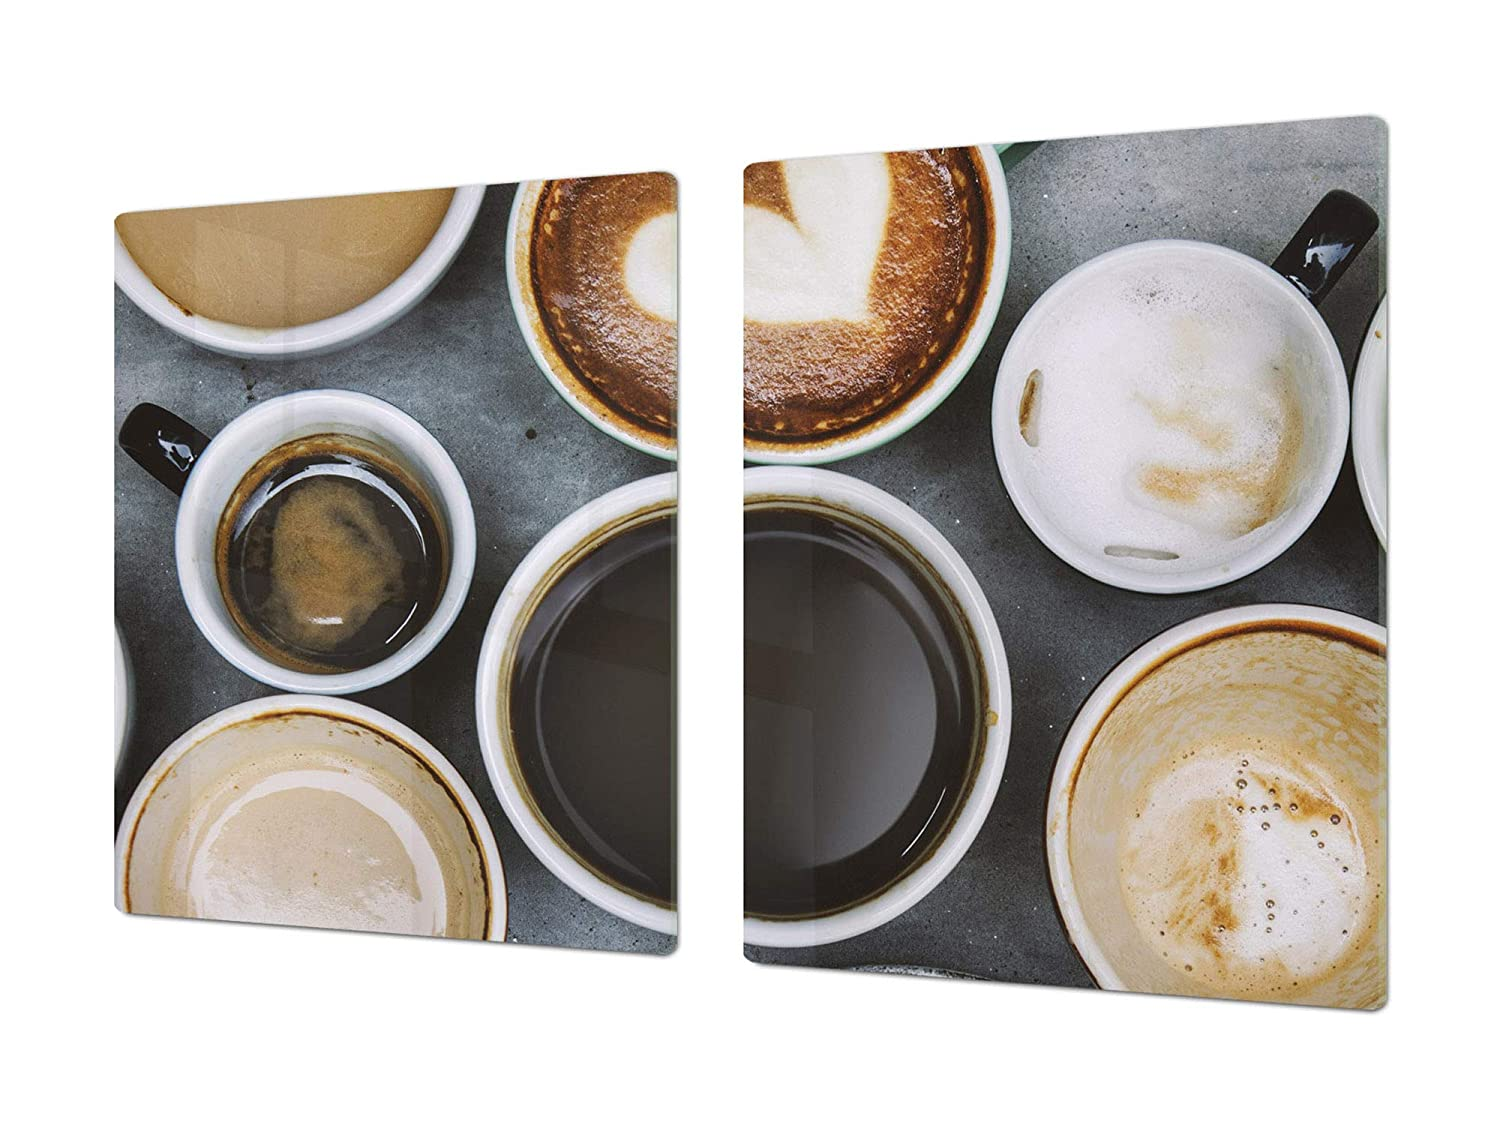 Coffee 5 2x40x52 HUGE Cutting Board – Worktop saver and Pastry Board – Scratch & Shatter Resistant Glass Kitchen Board; MEASURES  SINGLE  80 x 52 cm (31,5  x 20,47 ); DOUBLE  40 x 52 cm (15,75  x 20,47 ); Coffee series DD07